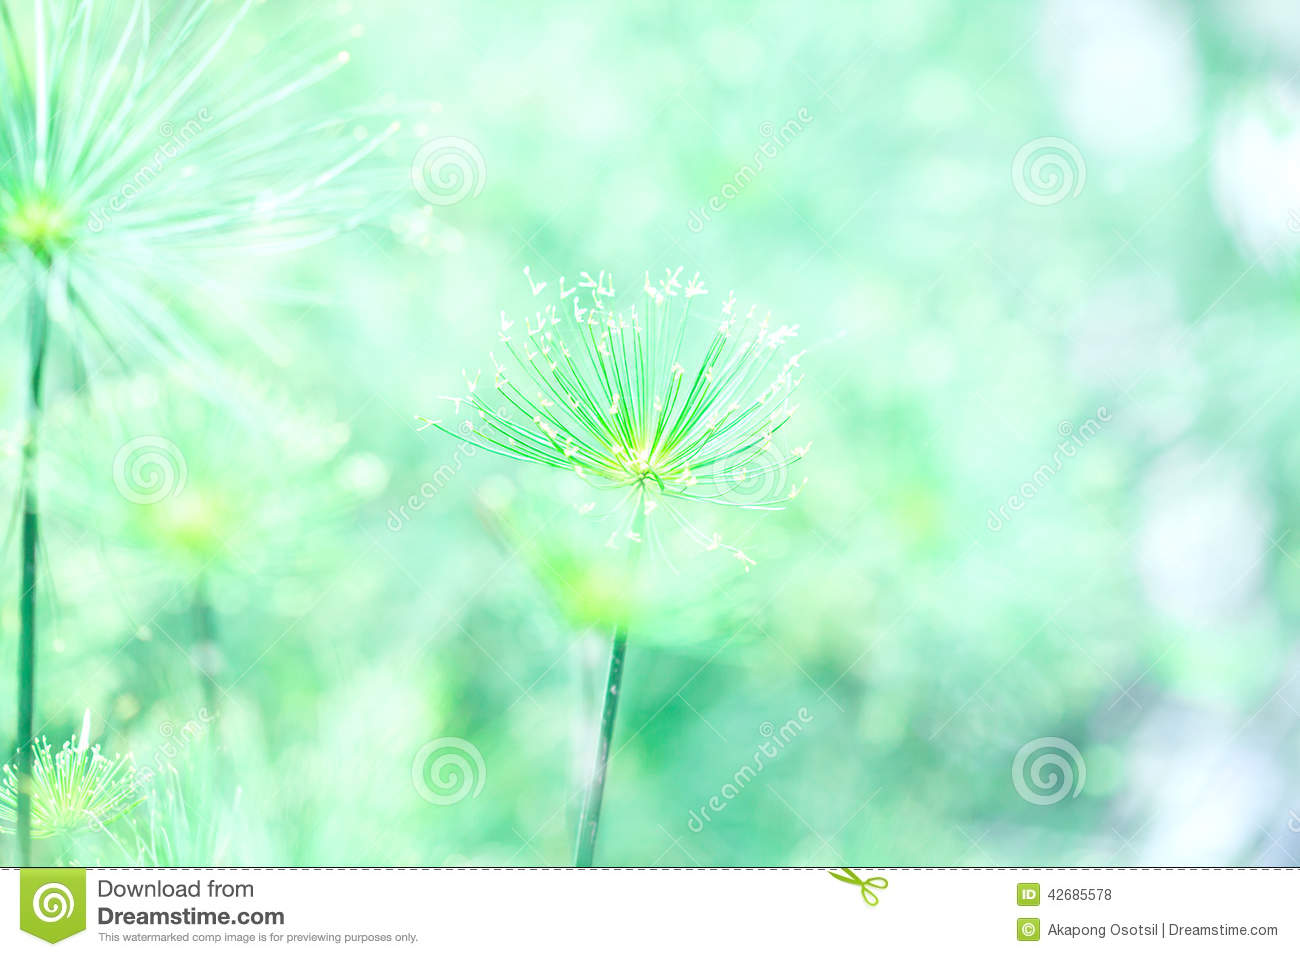 Soft green nature abstract background